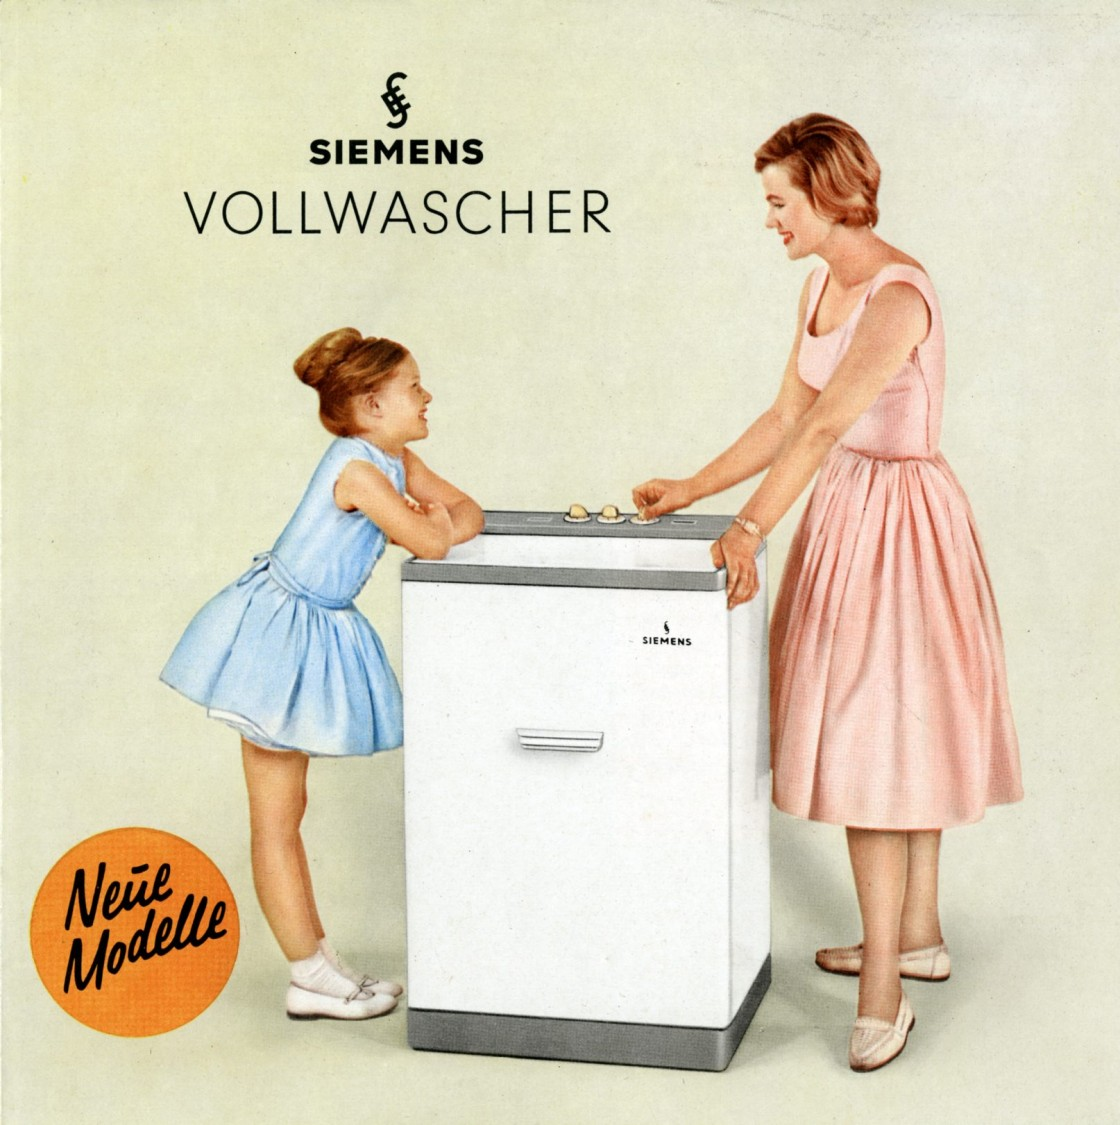 Image result for gERMAN WASHING MACHINES 1950S